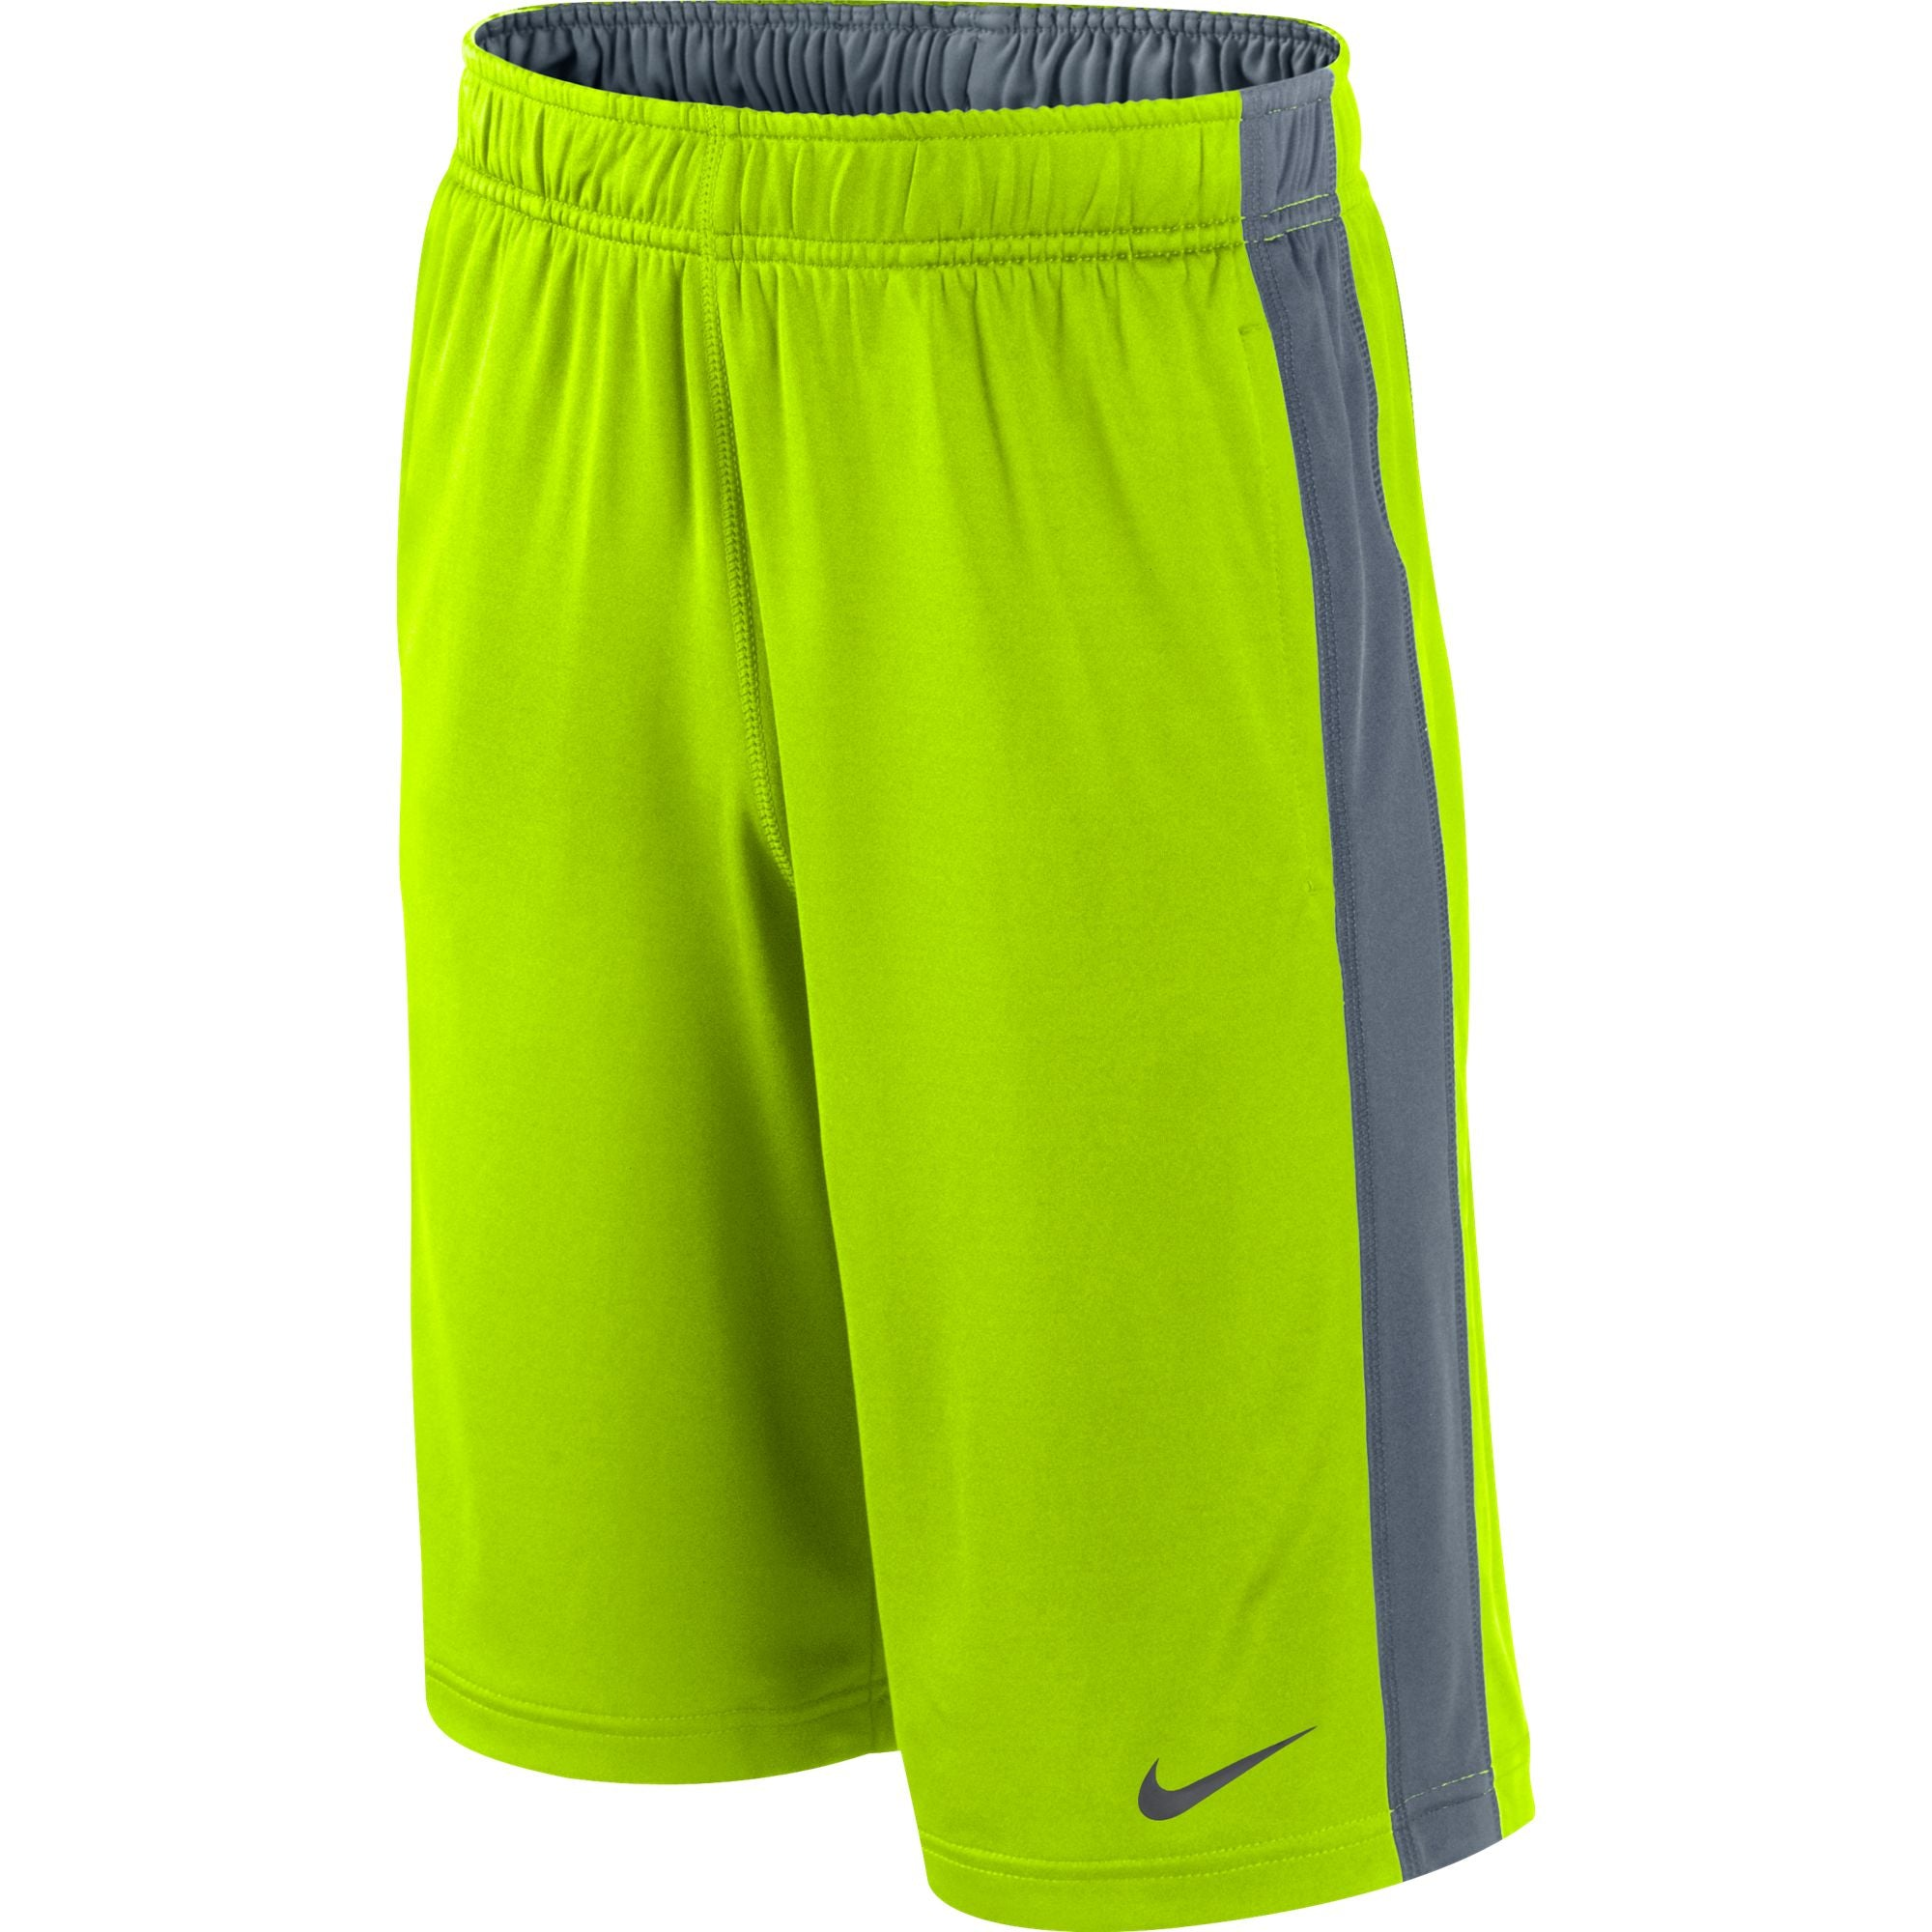 Nike Kids Training Fly Shorts - NK-403942-710